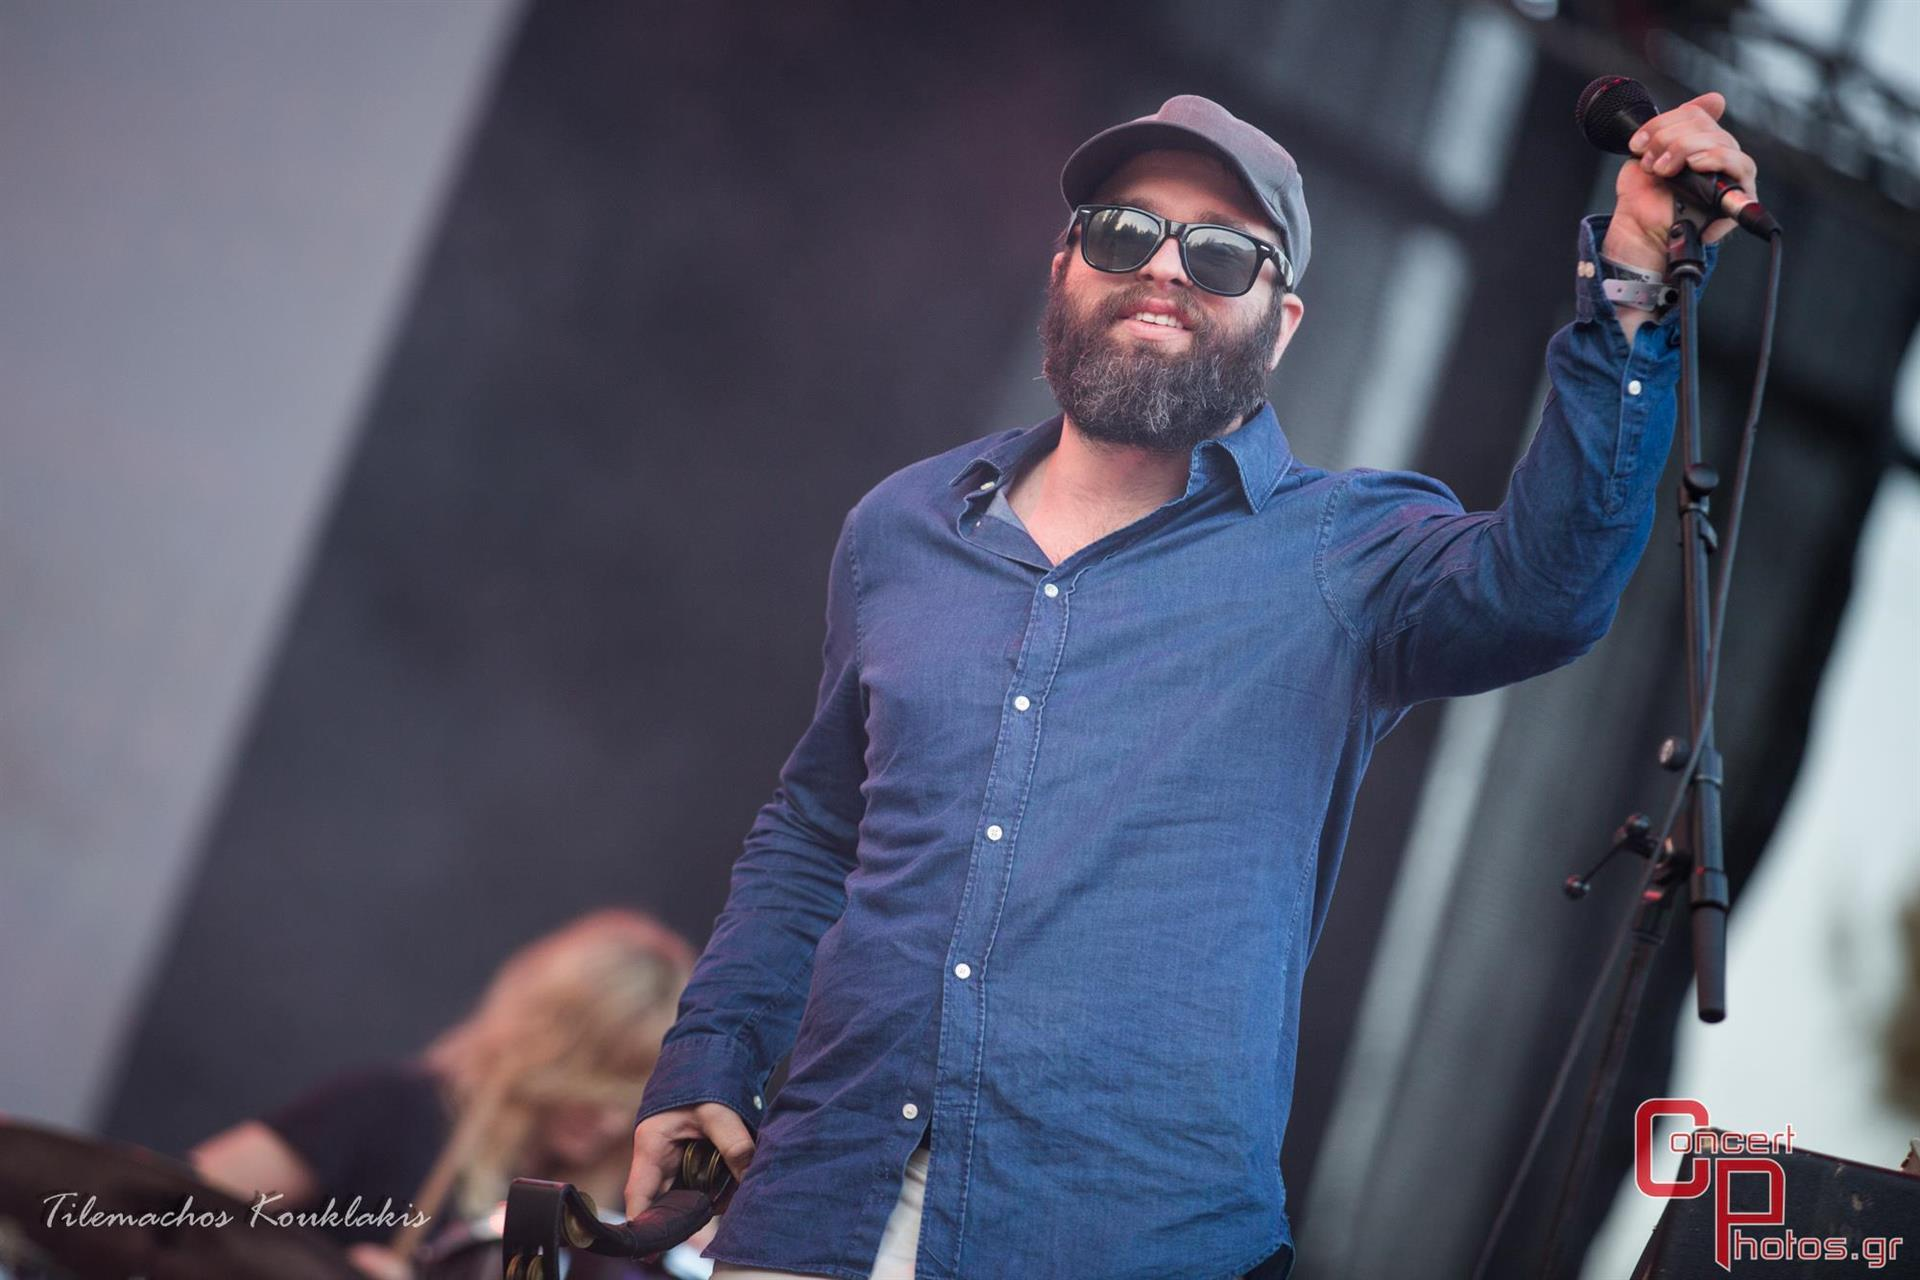 Rockwave 2015 - Black Keys-Black Angels-1000mods-The Big Nose Attack-Puta Volcano-Rockwave 2015 - Black Keys-Black Angels-1000mods photographer:  - 04A_Black Angels_14